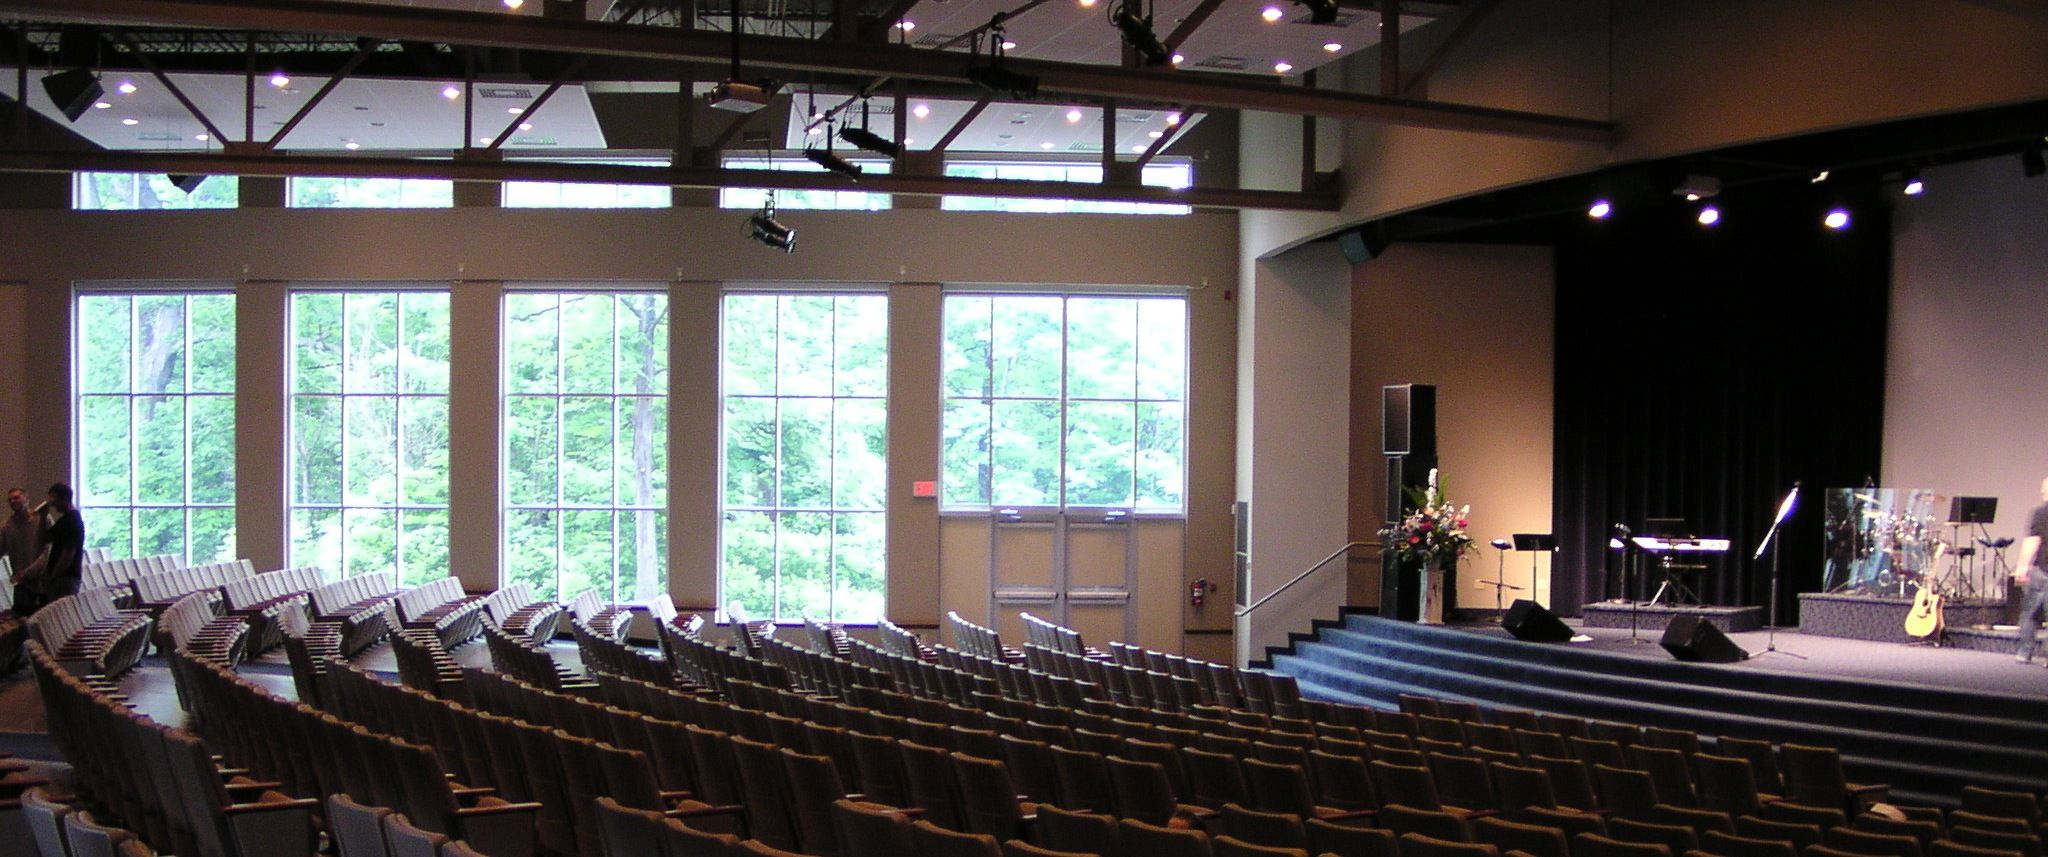 Small Church Sanctuary Design Ideas 1000 images about sanctuary design ideas on pinterest interesting idea small church stage 12 home Sanctuary Designs For Small Churches Church Design Dedicated Sanctuary Or Multi Purpose Auditorium